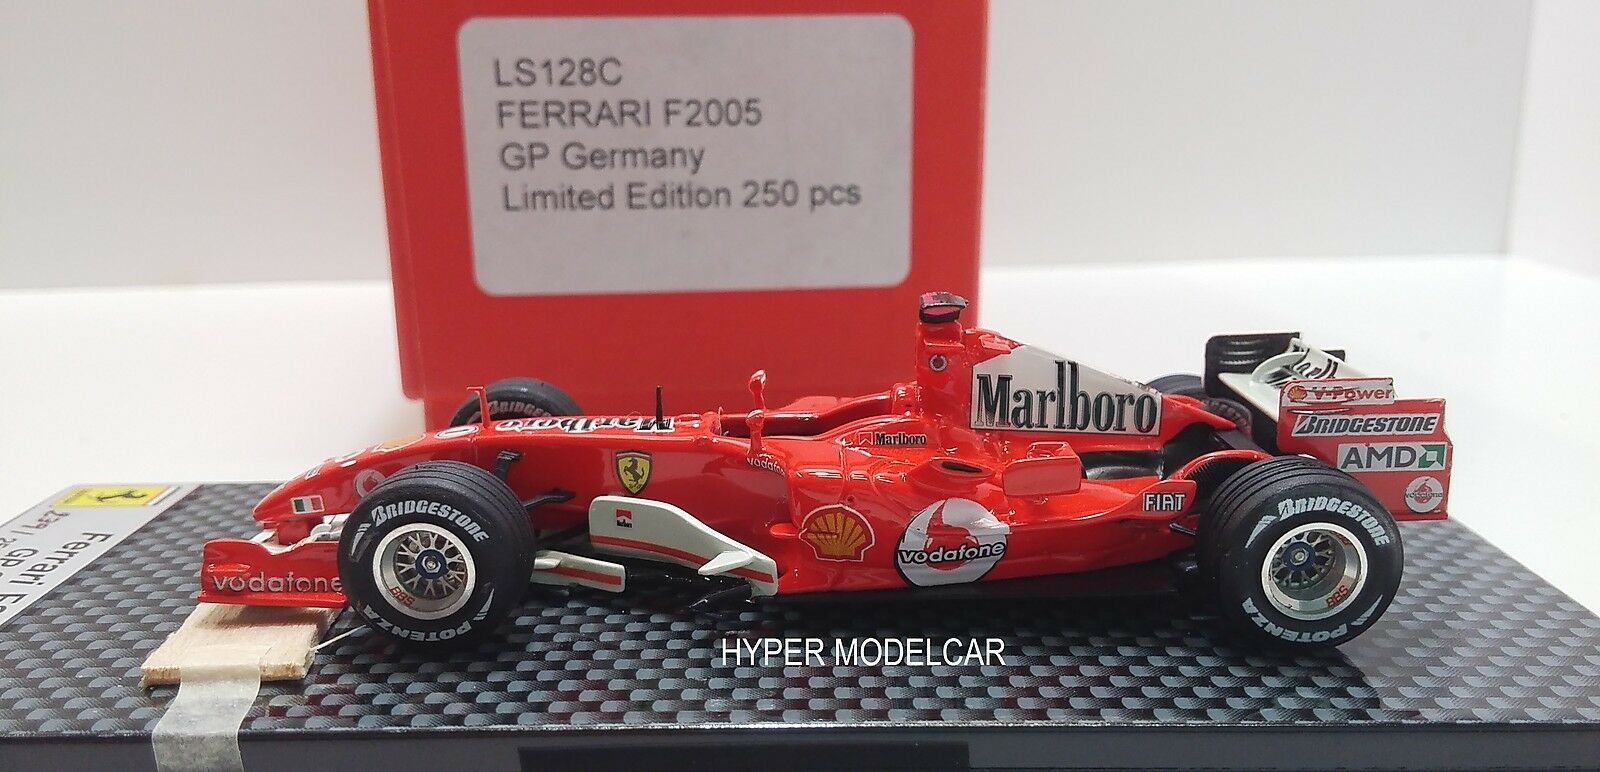 LOOKSMART 1 43 Ferrari F1 F2005  1 Gp Germany Schumacher Barrichello Art. LS128C